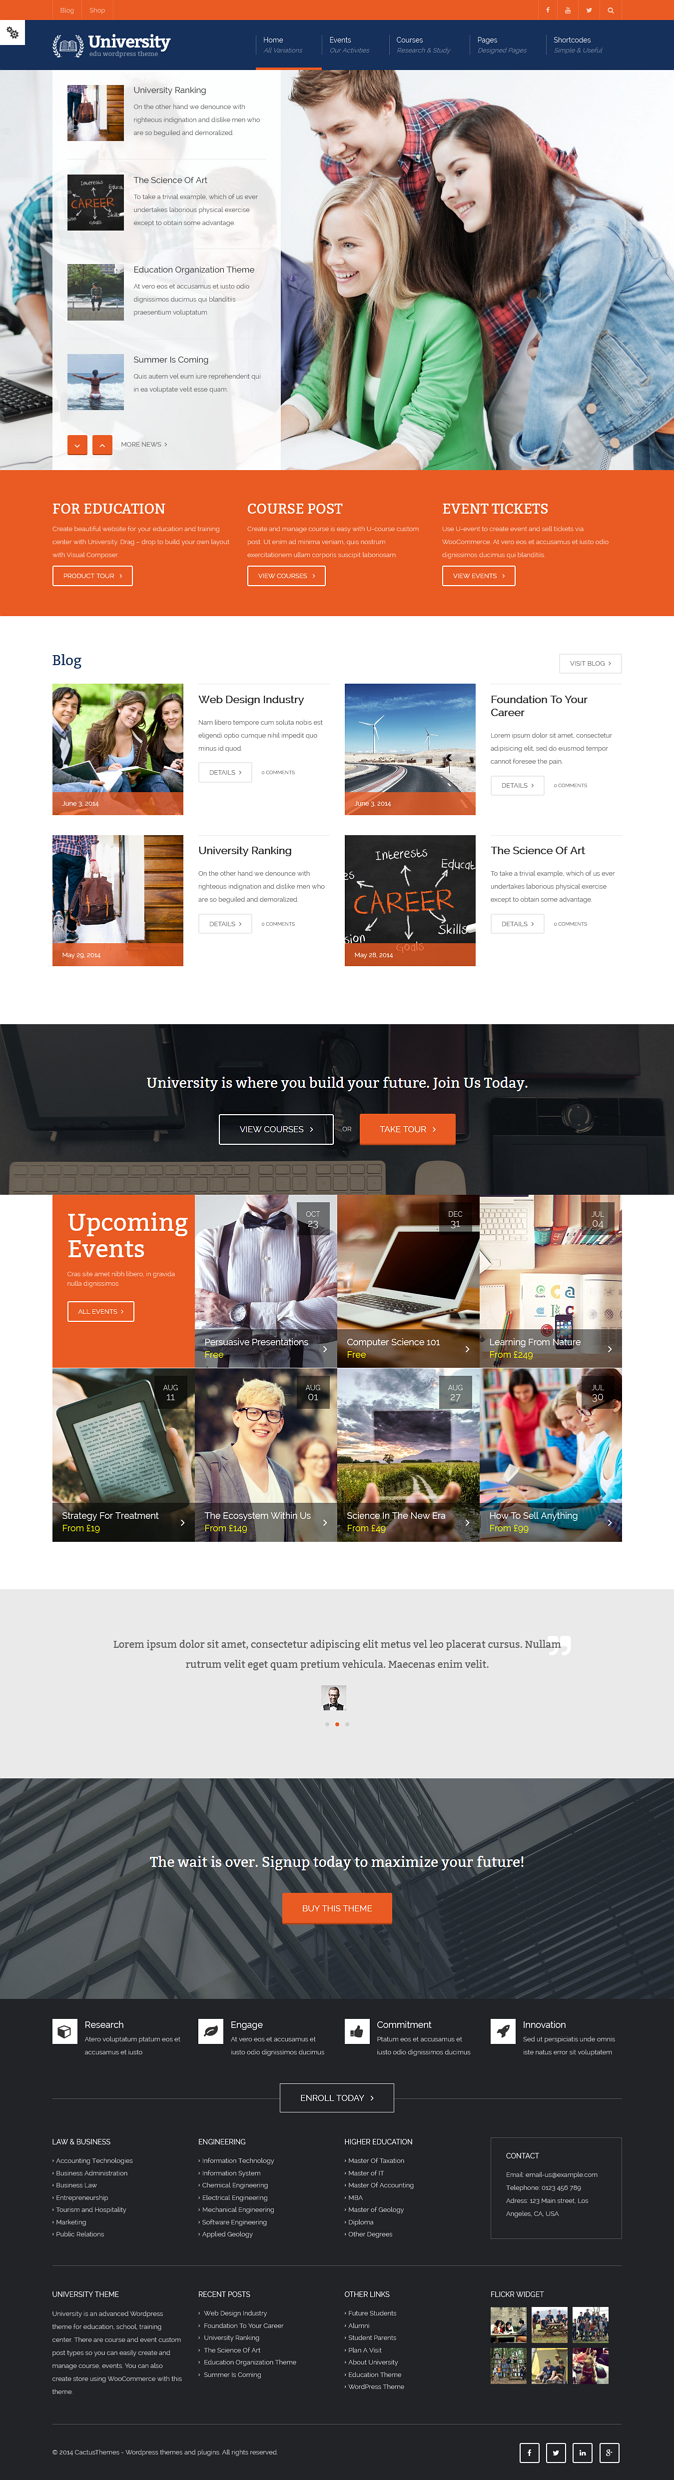 University is a multipurpose WordPress theme for Events, Courses, business and shopping site. Th ...